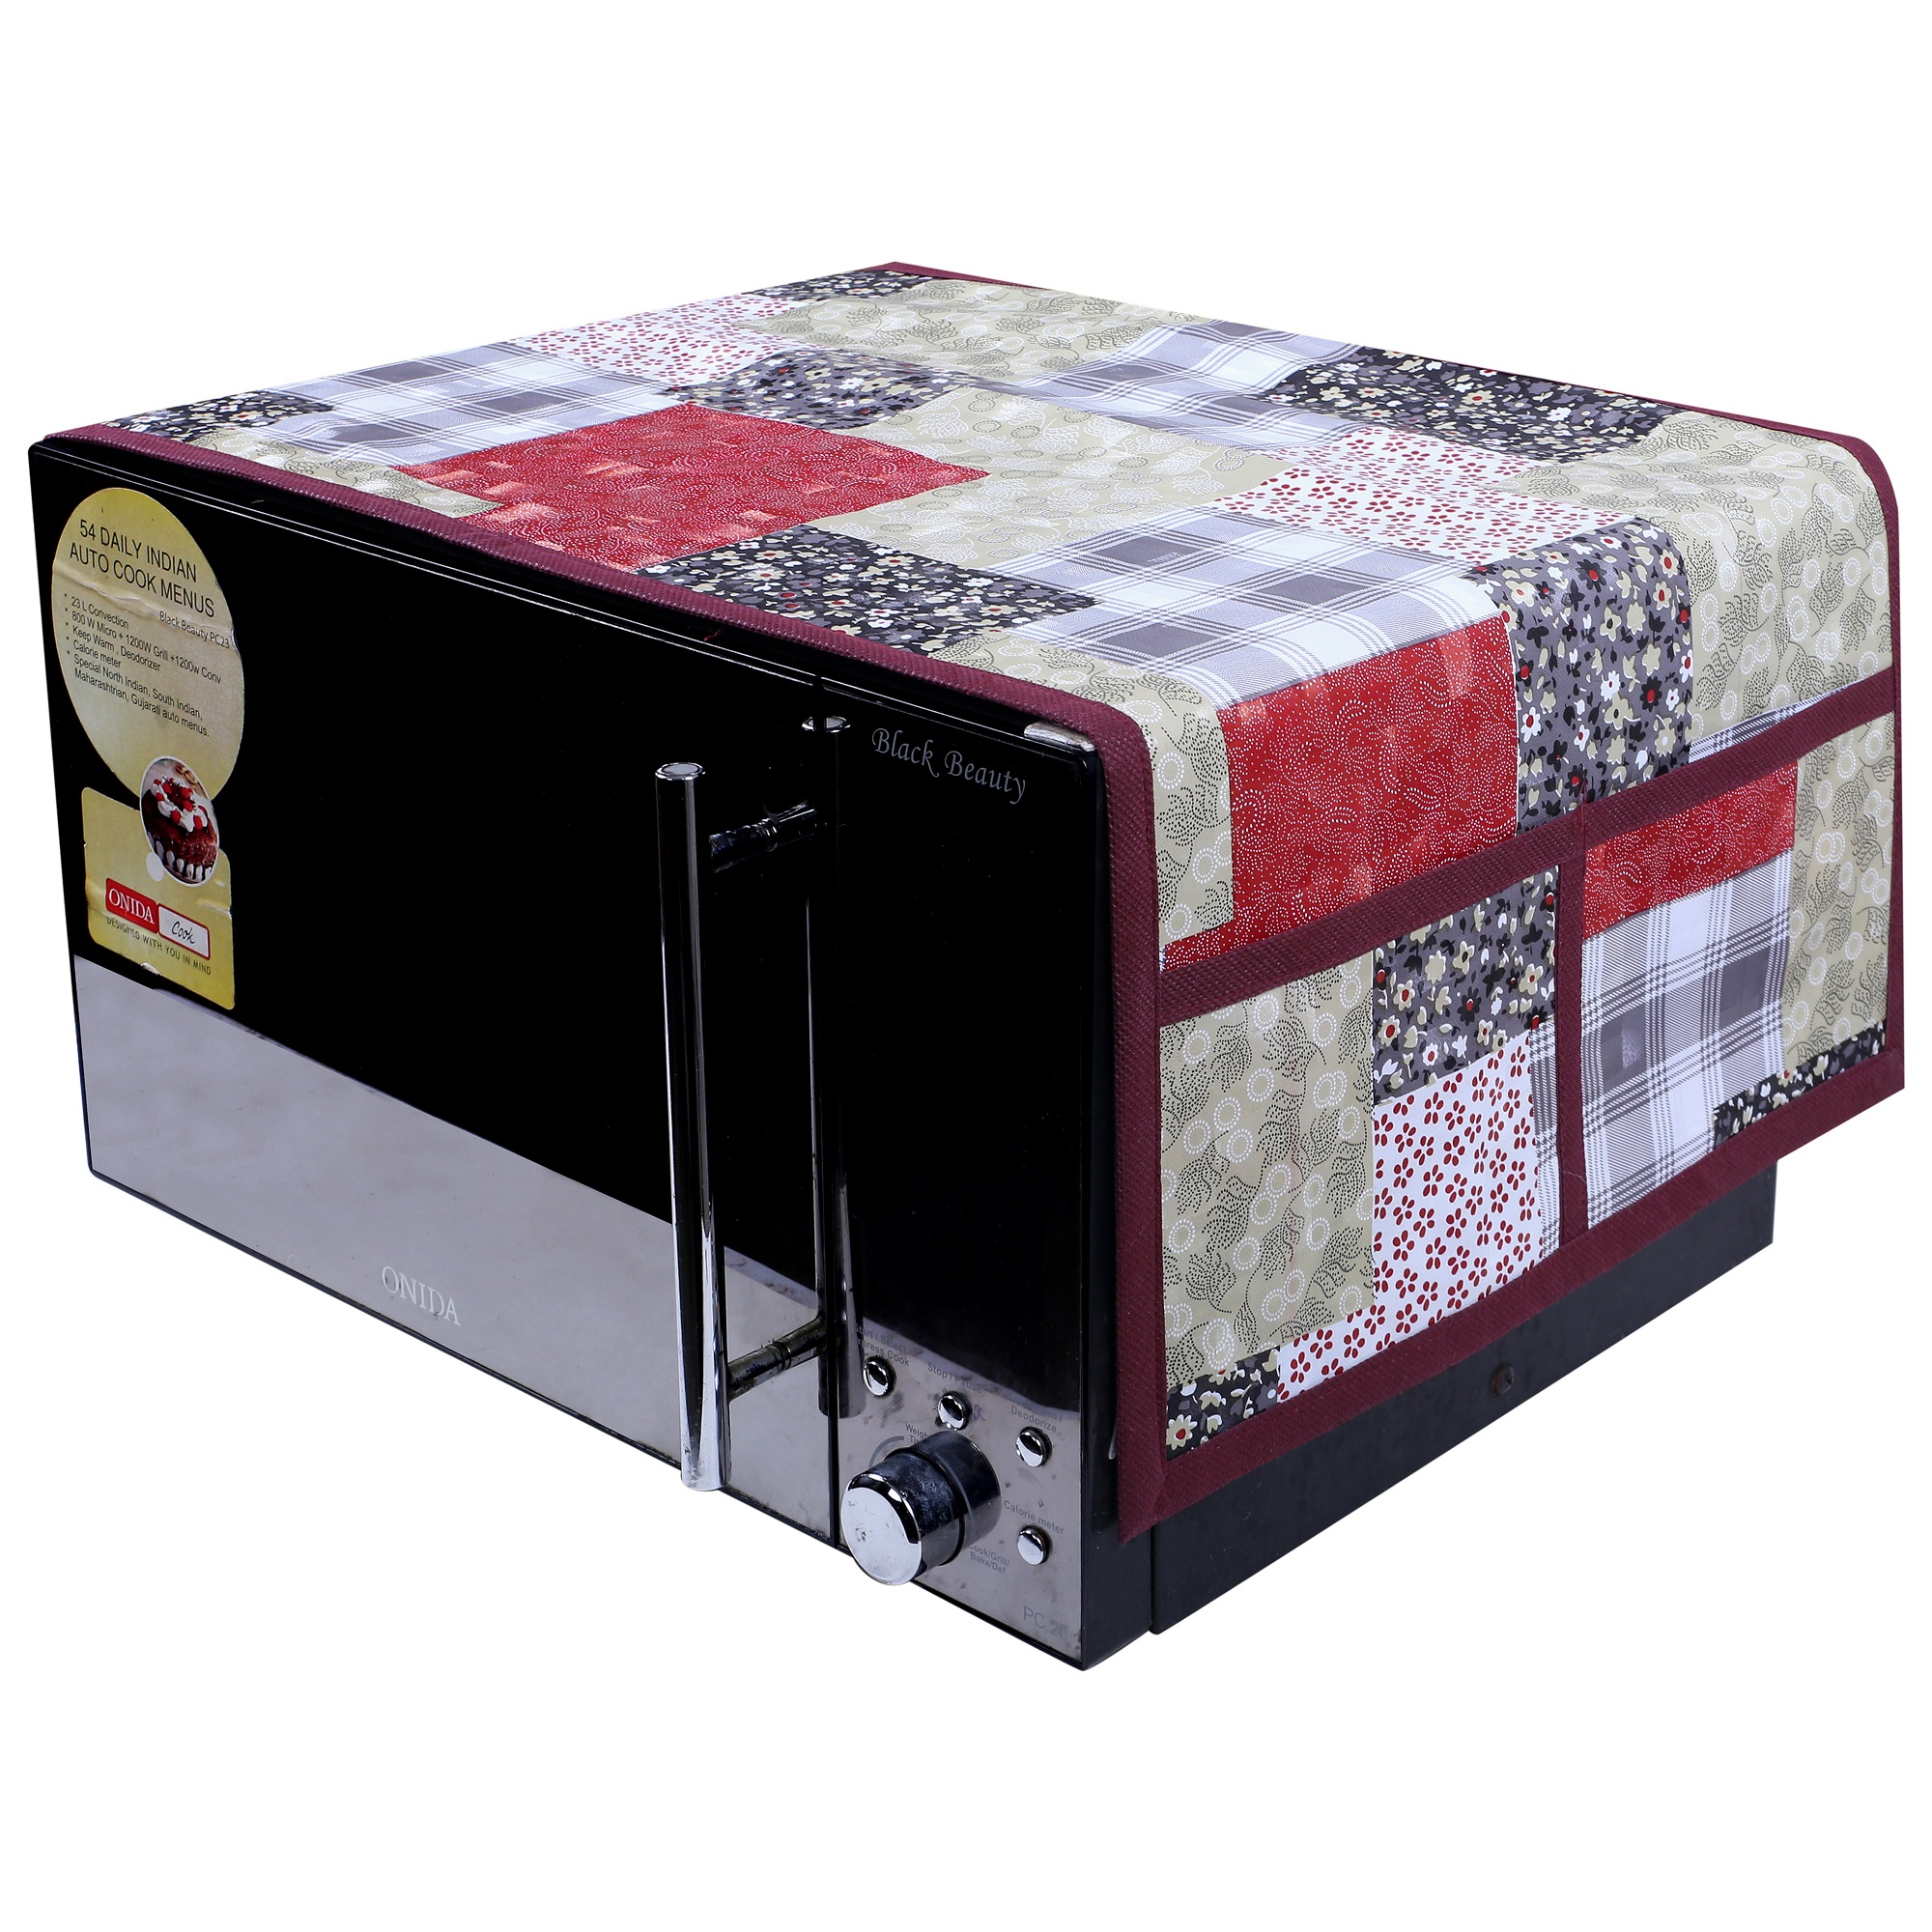 Kuber Industries 3D Checkered Design PVC Microwave Oven Top Cover 30 Liter with Utility 4 Pockets (Maroon) - CTKTC40677